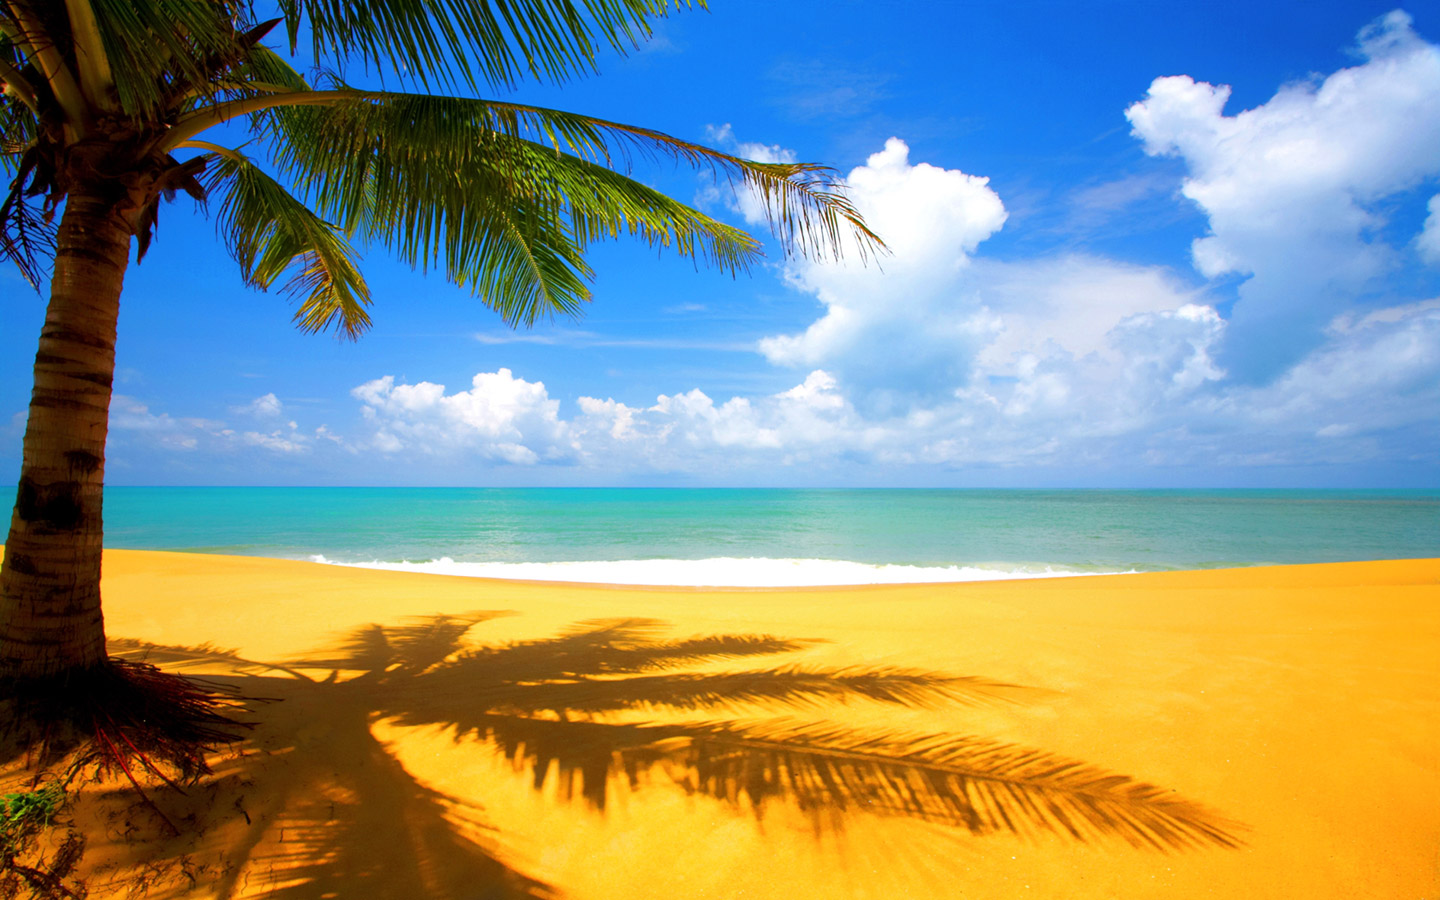 http://1.bp.blogspot.com/-Mp5xcvEkH1g/ThNVOSJGjQI/AAAAAAAALBg/kxJeLcz9D4s/s1600/at-the-beach-hd-wallpaper-1440x900.jpg